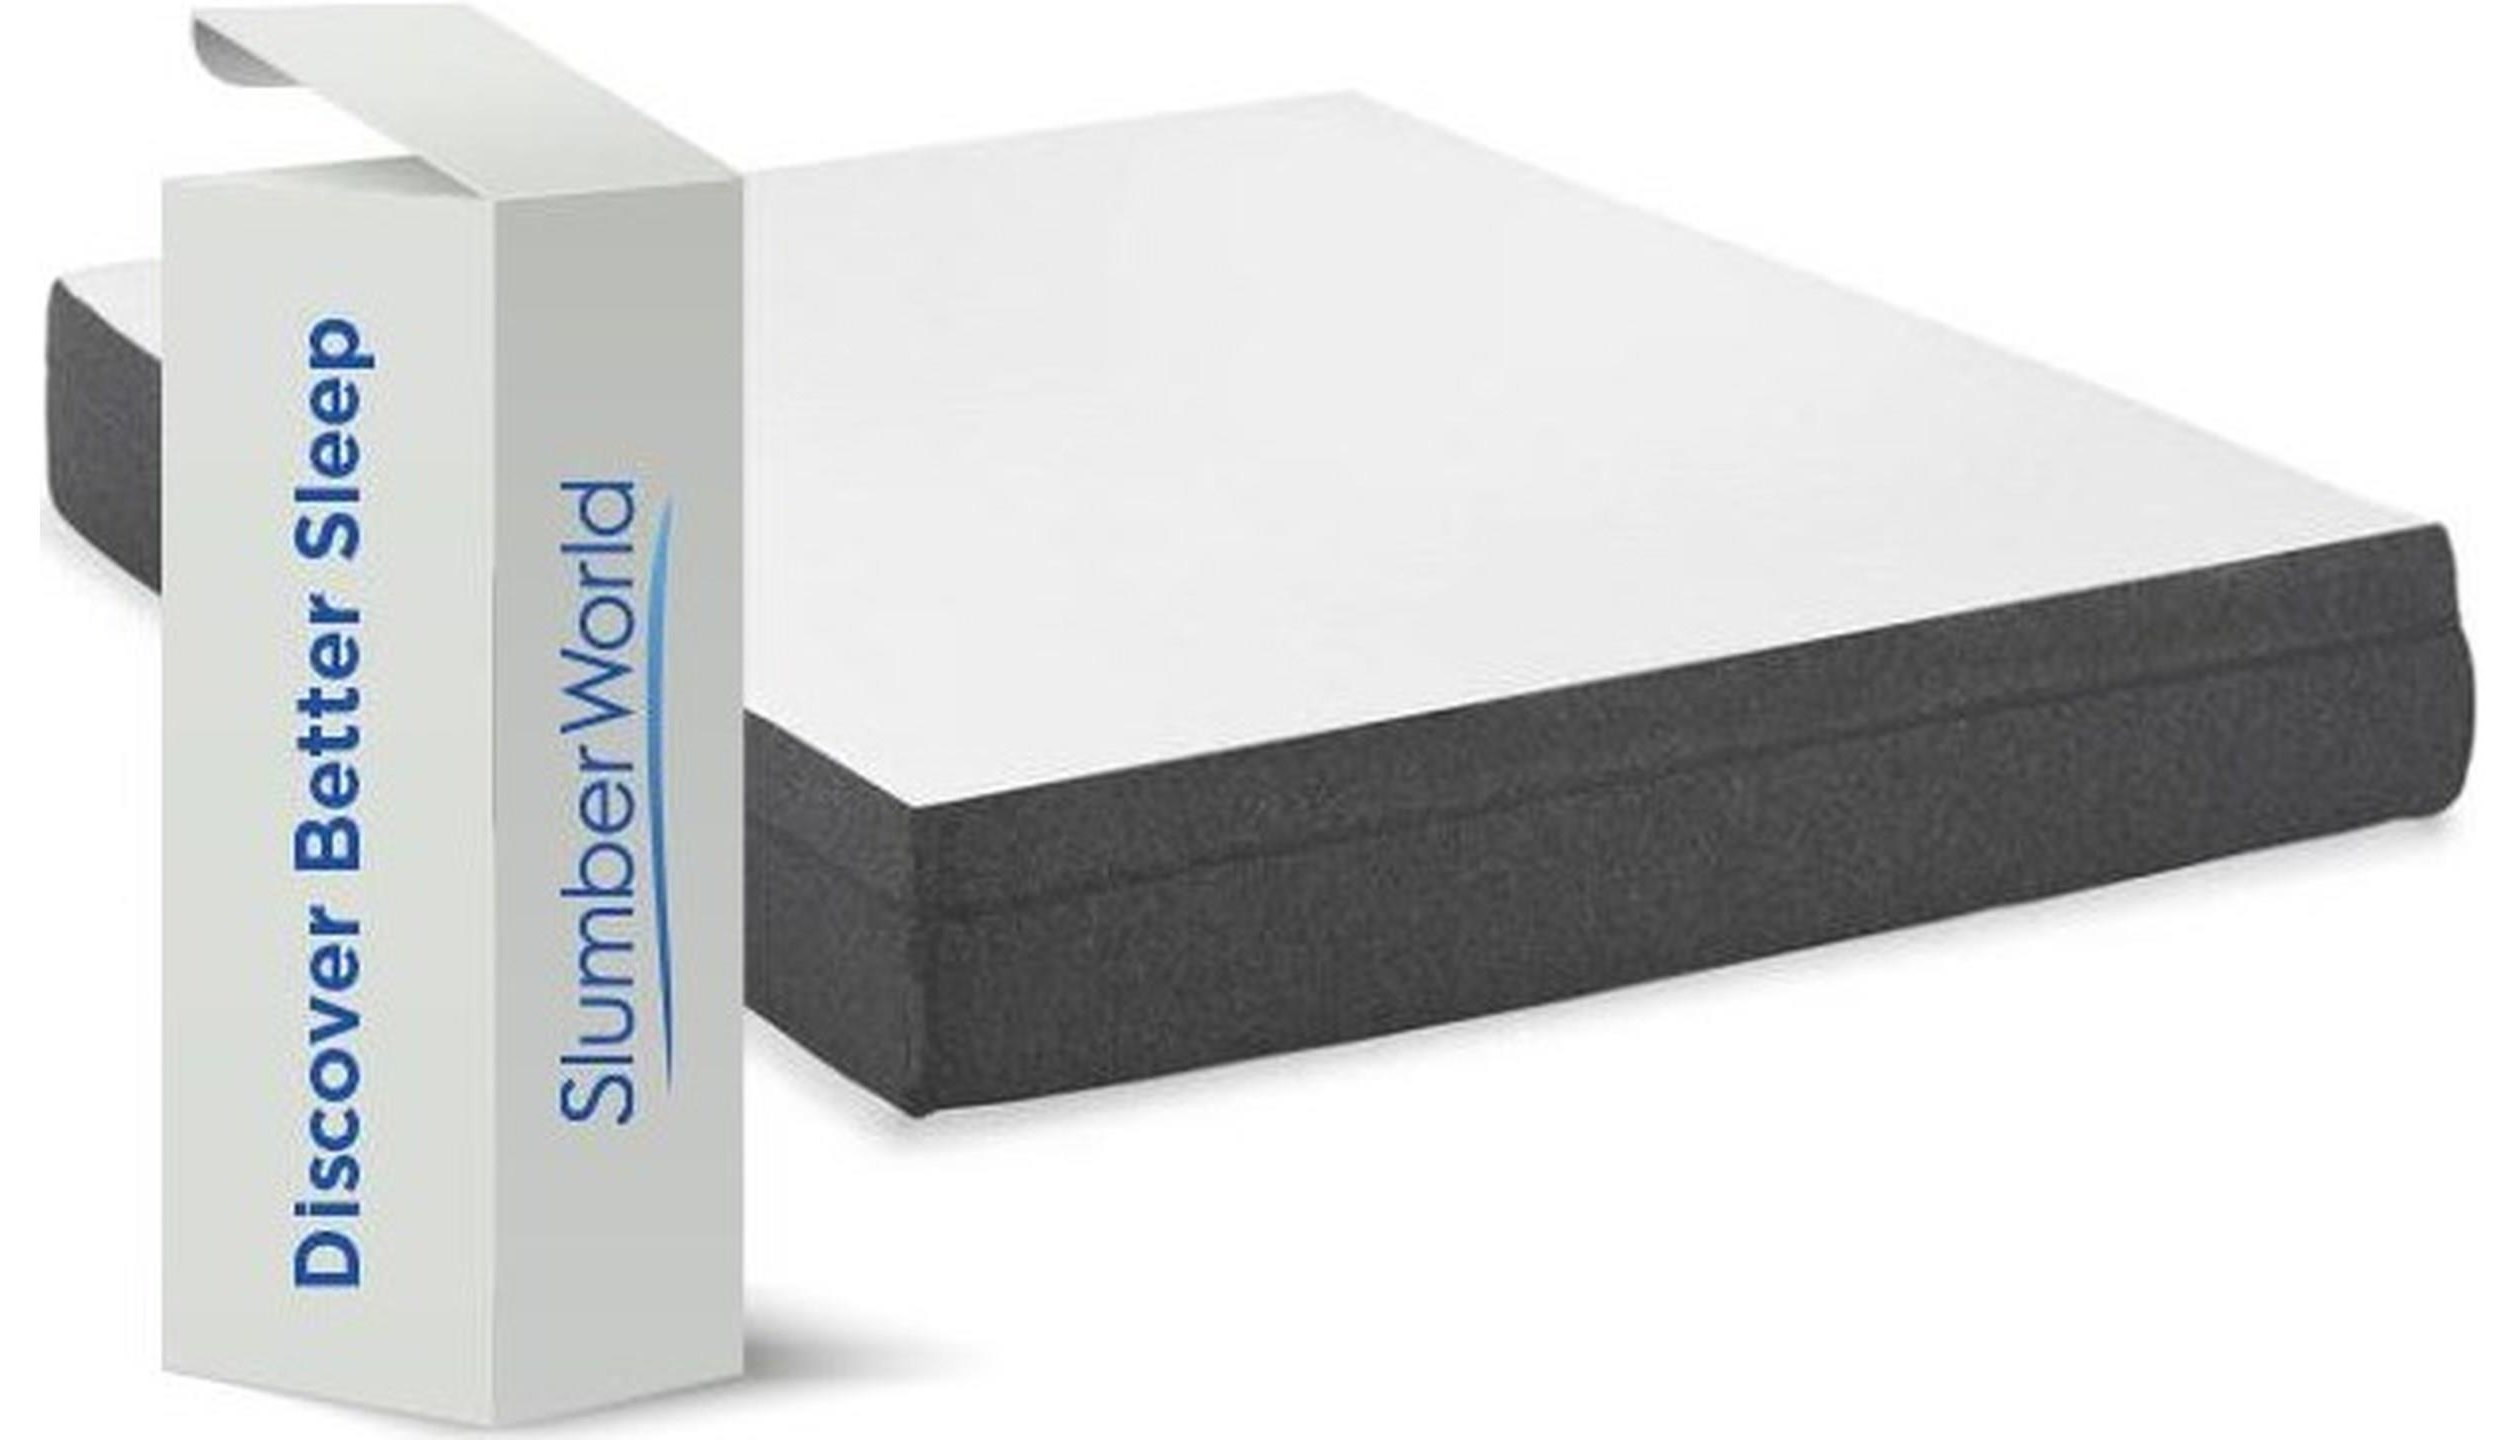 SB10 Hybrid Reactive Mattress by South Bay International at SlumberWorld